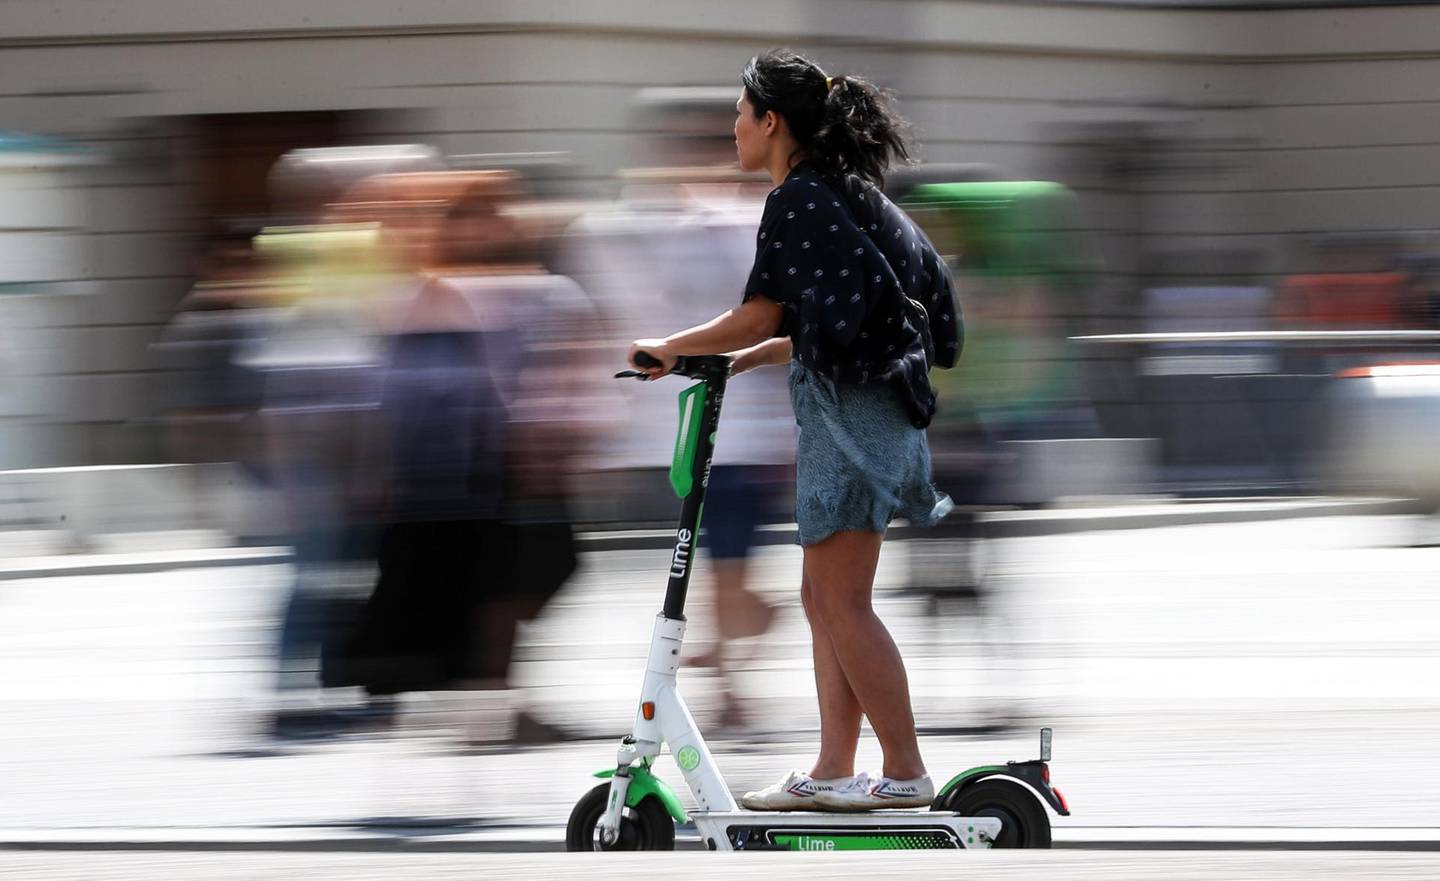 epa07724873 A woman rides on an electric scooter in Berlin, Germany, 18 July 2019. The shared electric scooters have been allowed to circulate in the capital since 15 June 2019. Multiple companies offer this service with a wide range of units parked around the city.  EPA/FELIPE TRUEBA